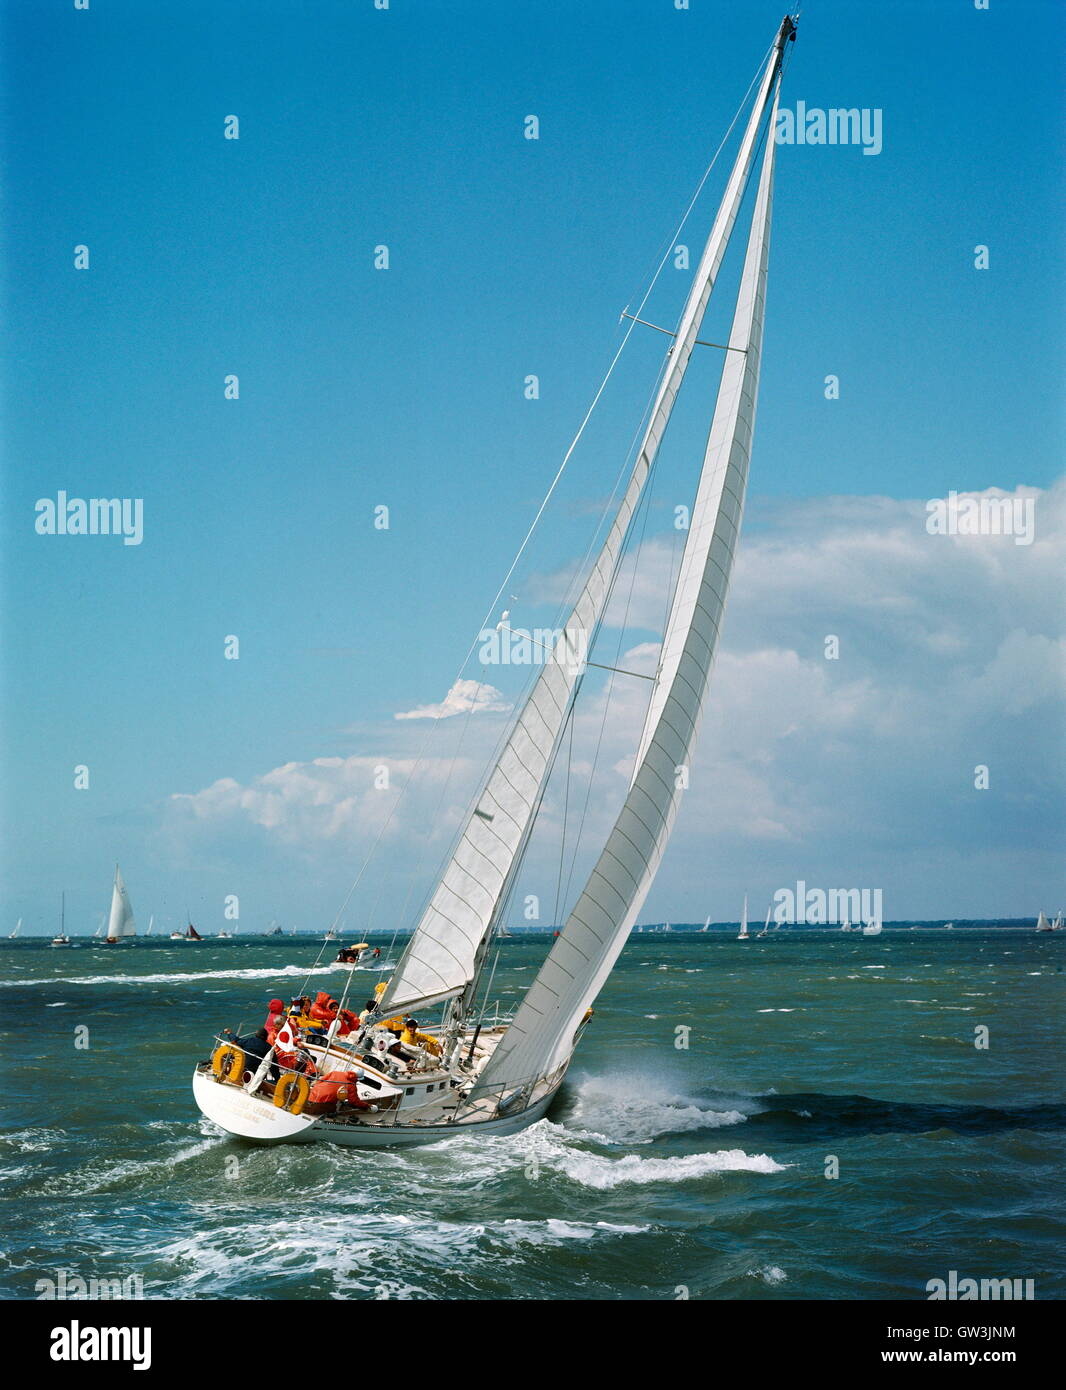 AJAXNETPHOTO. 1971. SOLENT, ENGLAND. - ADMIRAL'S CUP - AMERICAN TEAM ENTRY YANKEE GIRL AT THE START OF THE FASTNET Stock Photo